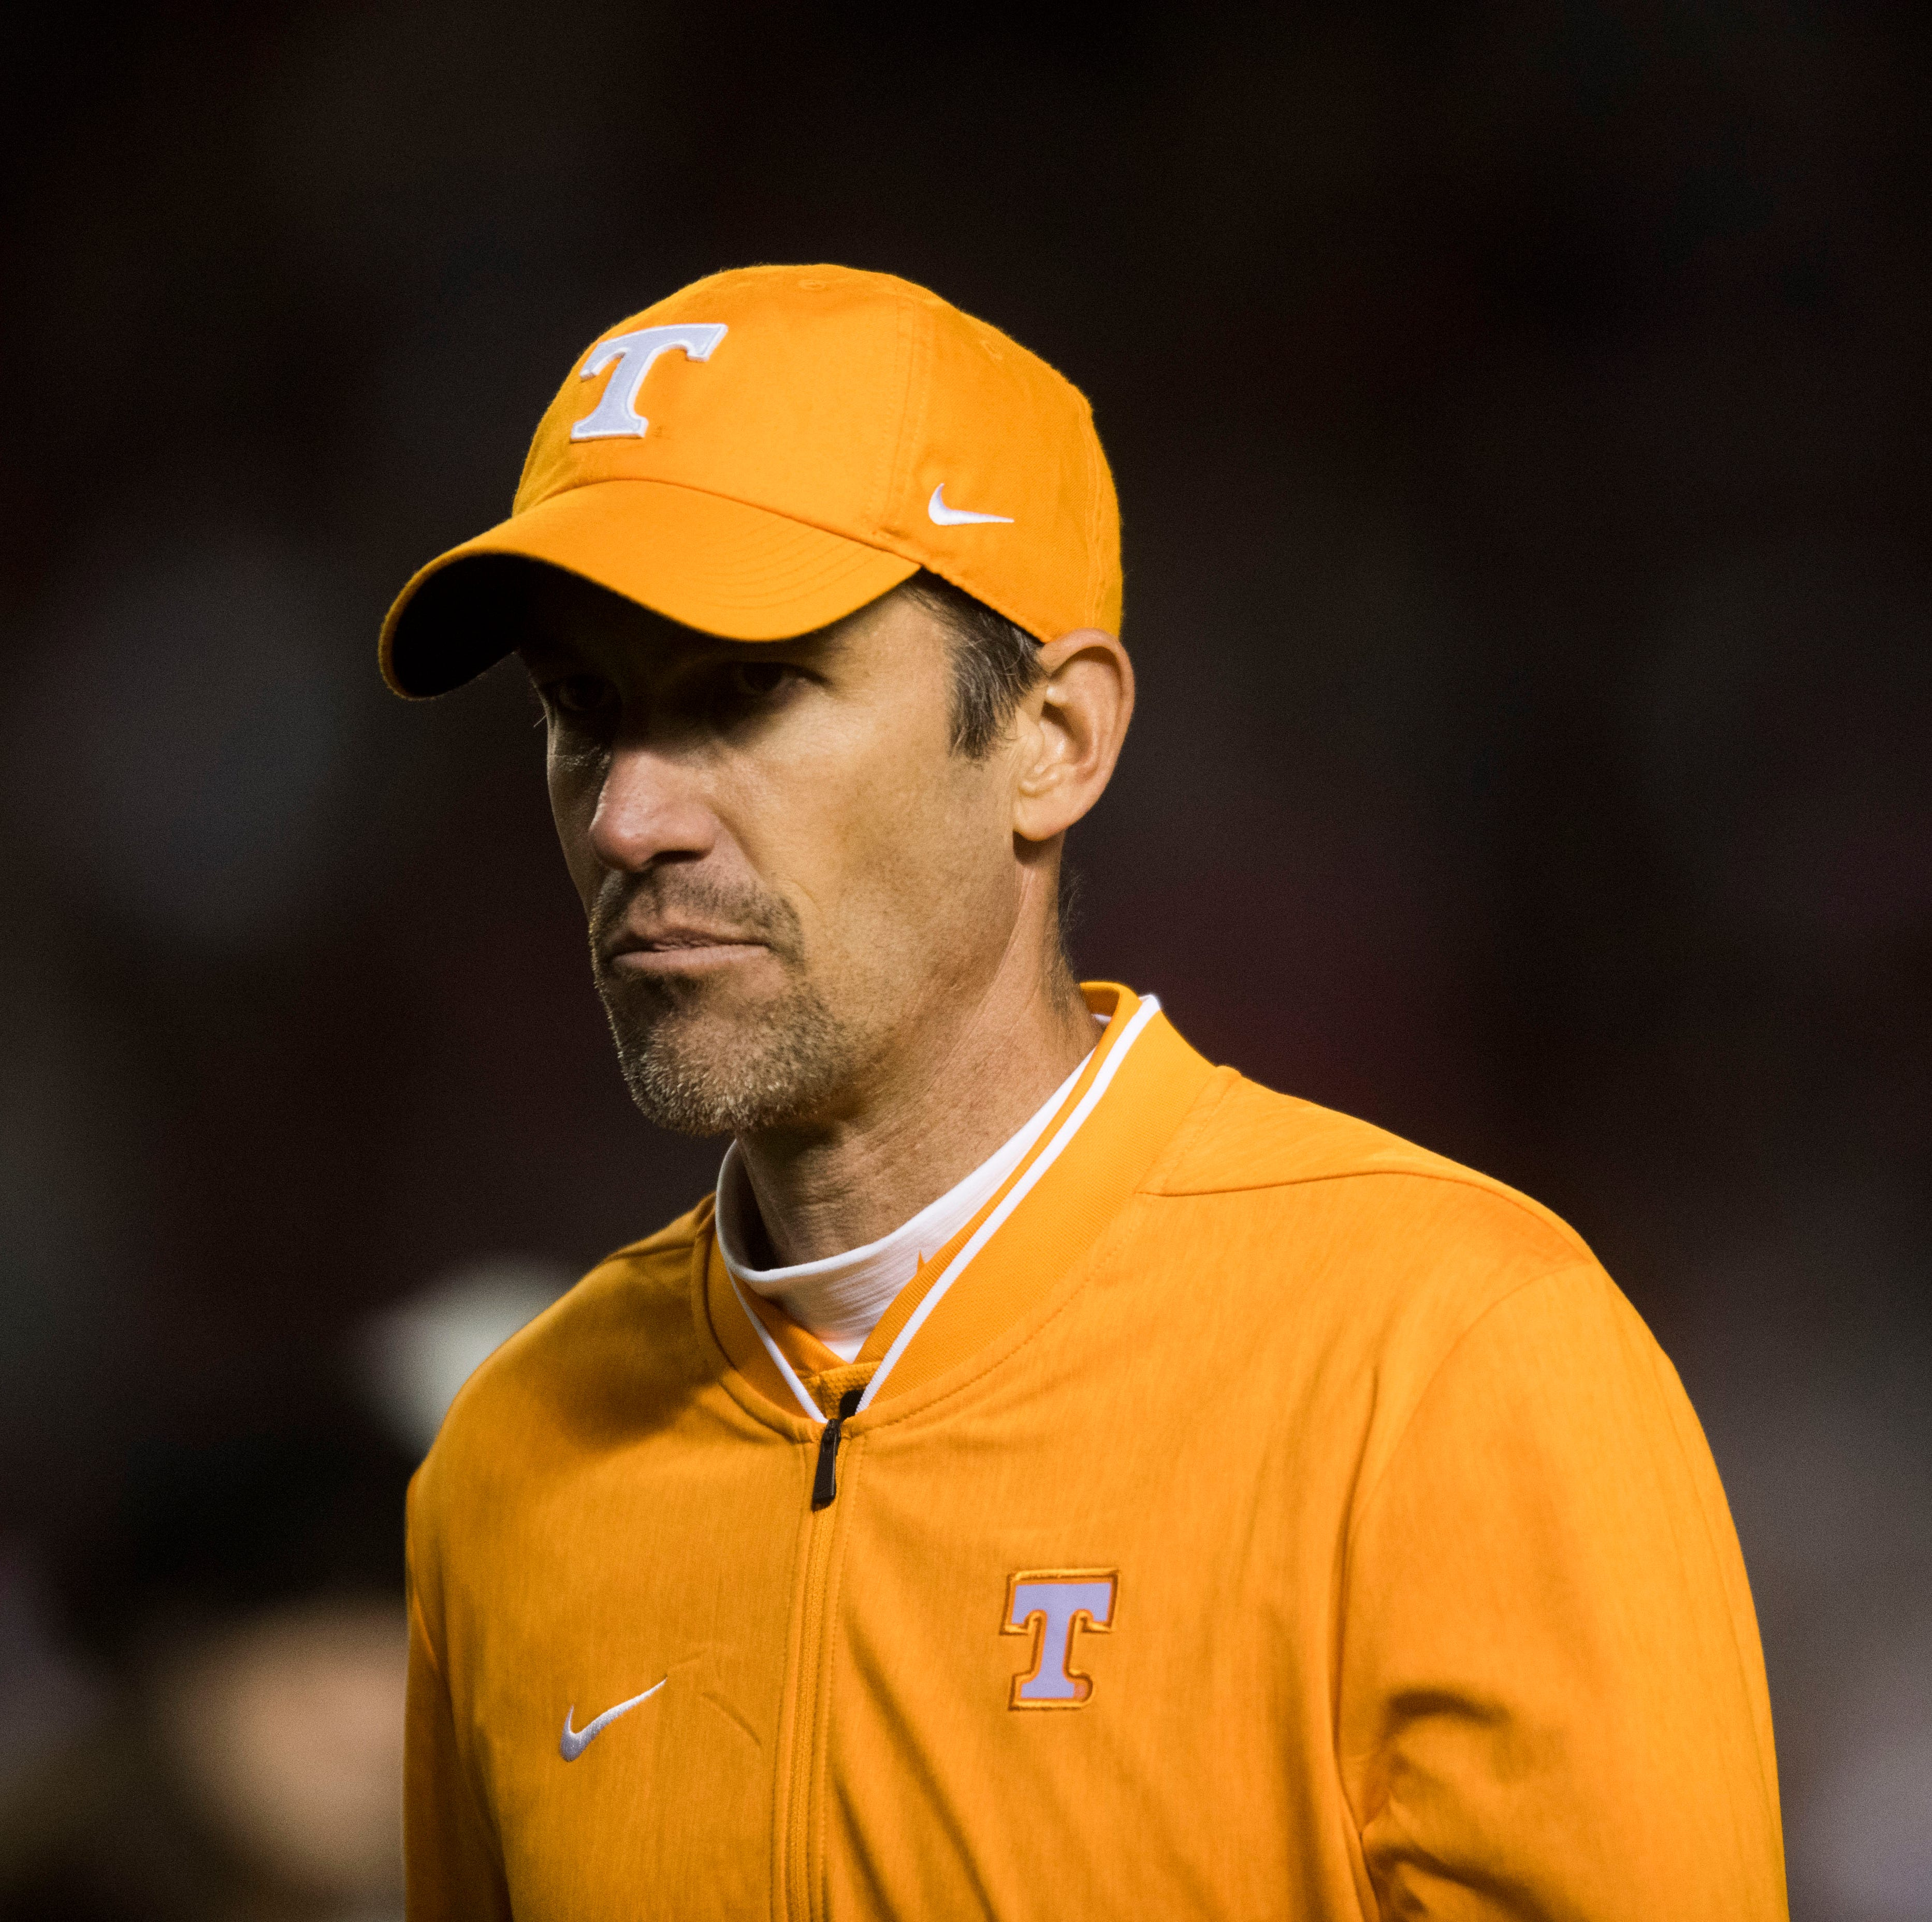 UT Vols: Tennessee football assistant coach salaries ranked 11th nationally, database shows